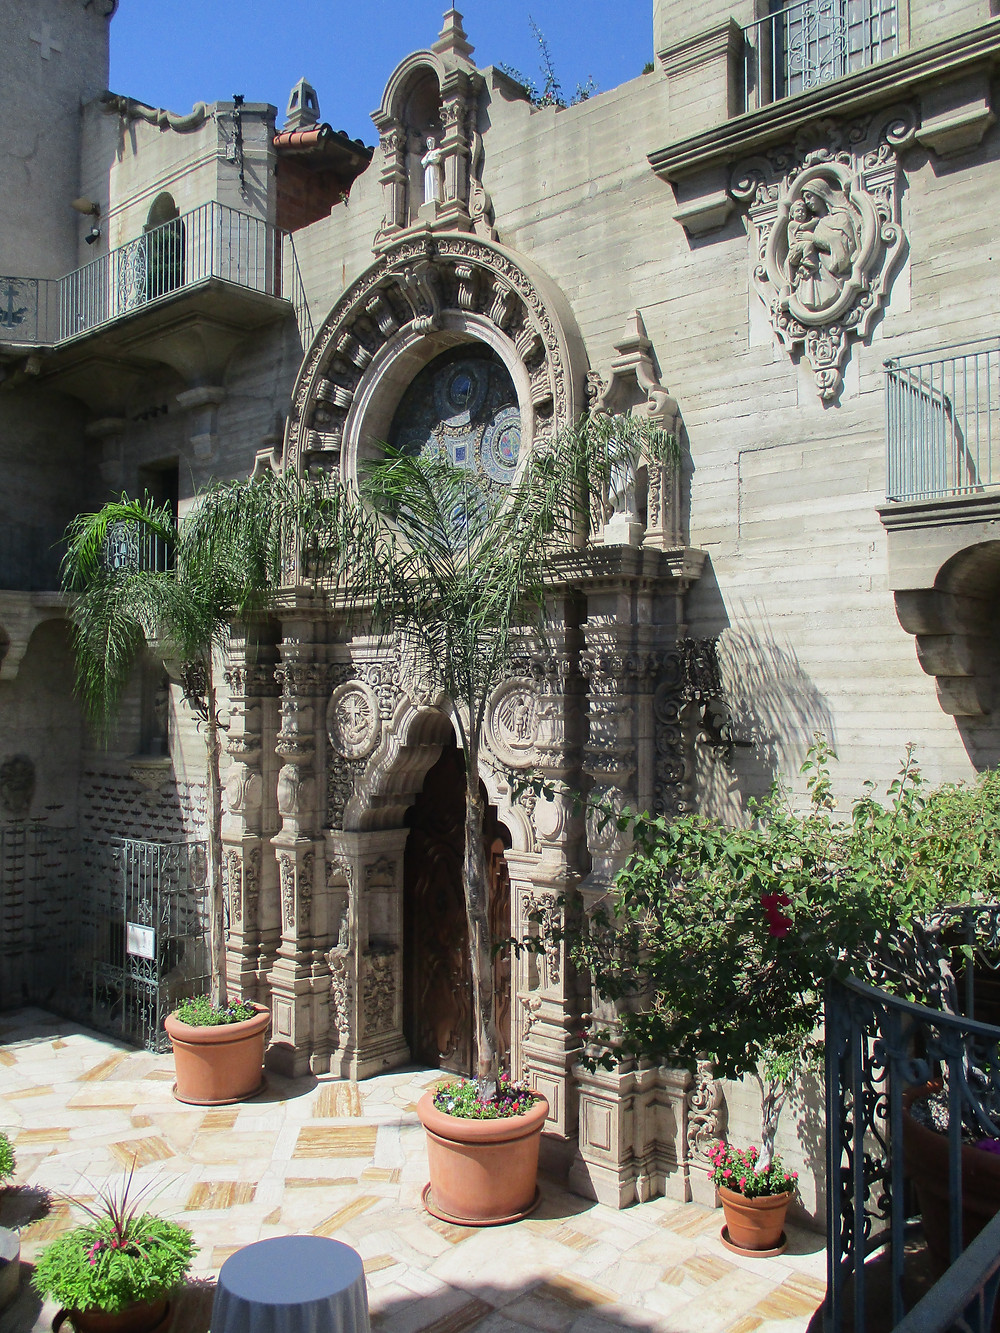 The Mission Inn, site of the 2018 Historical Romance Retreat